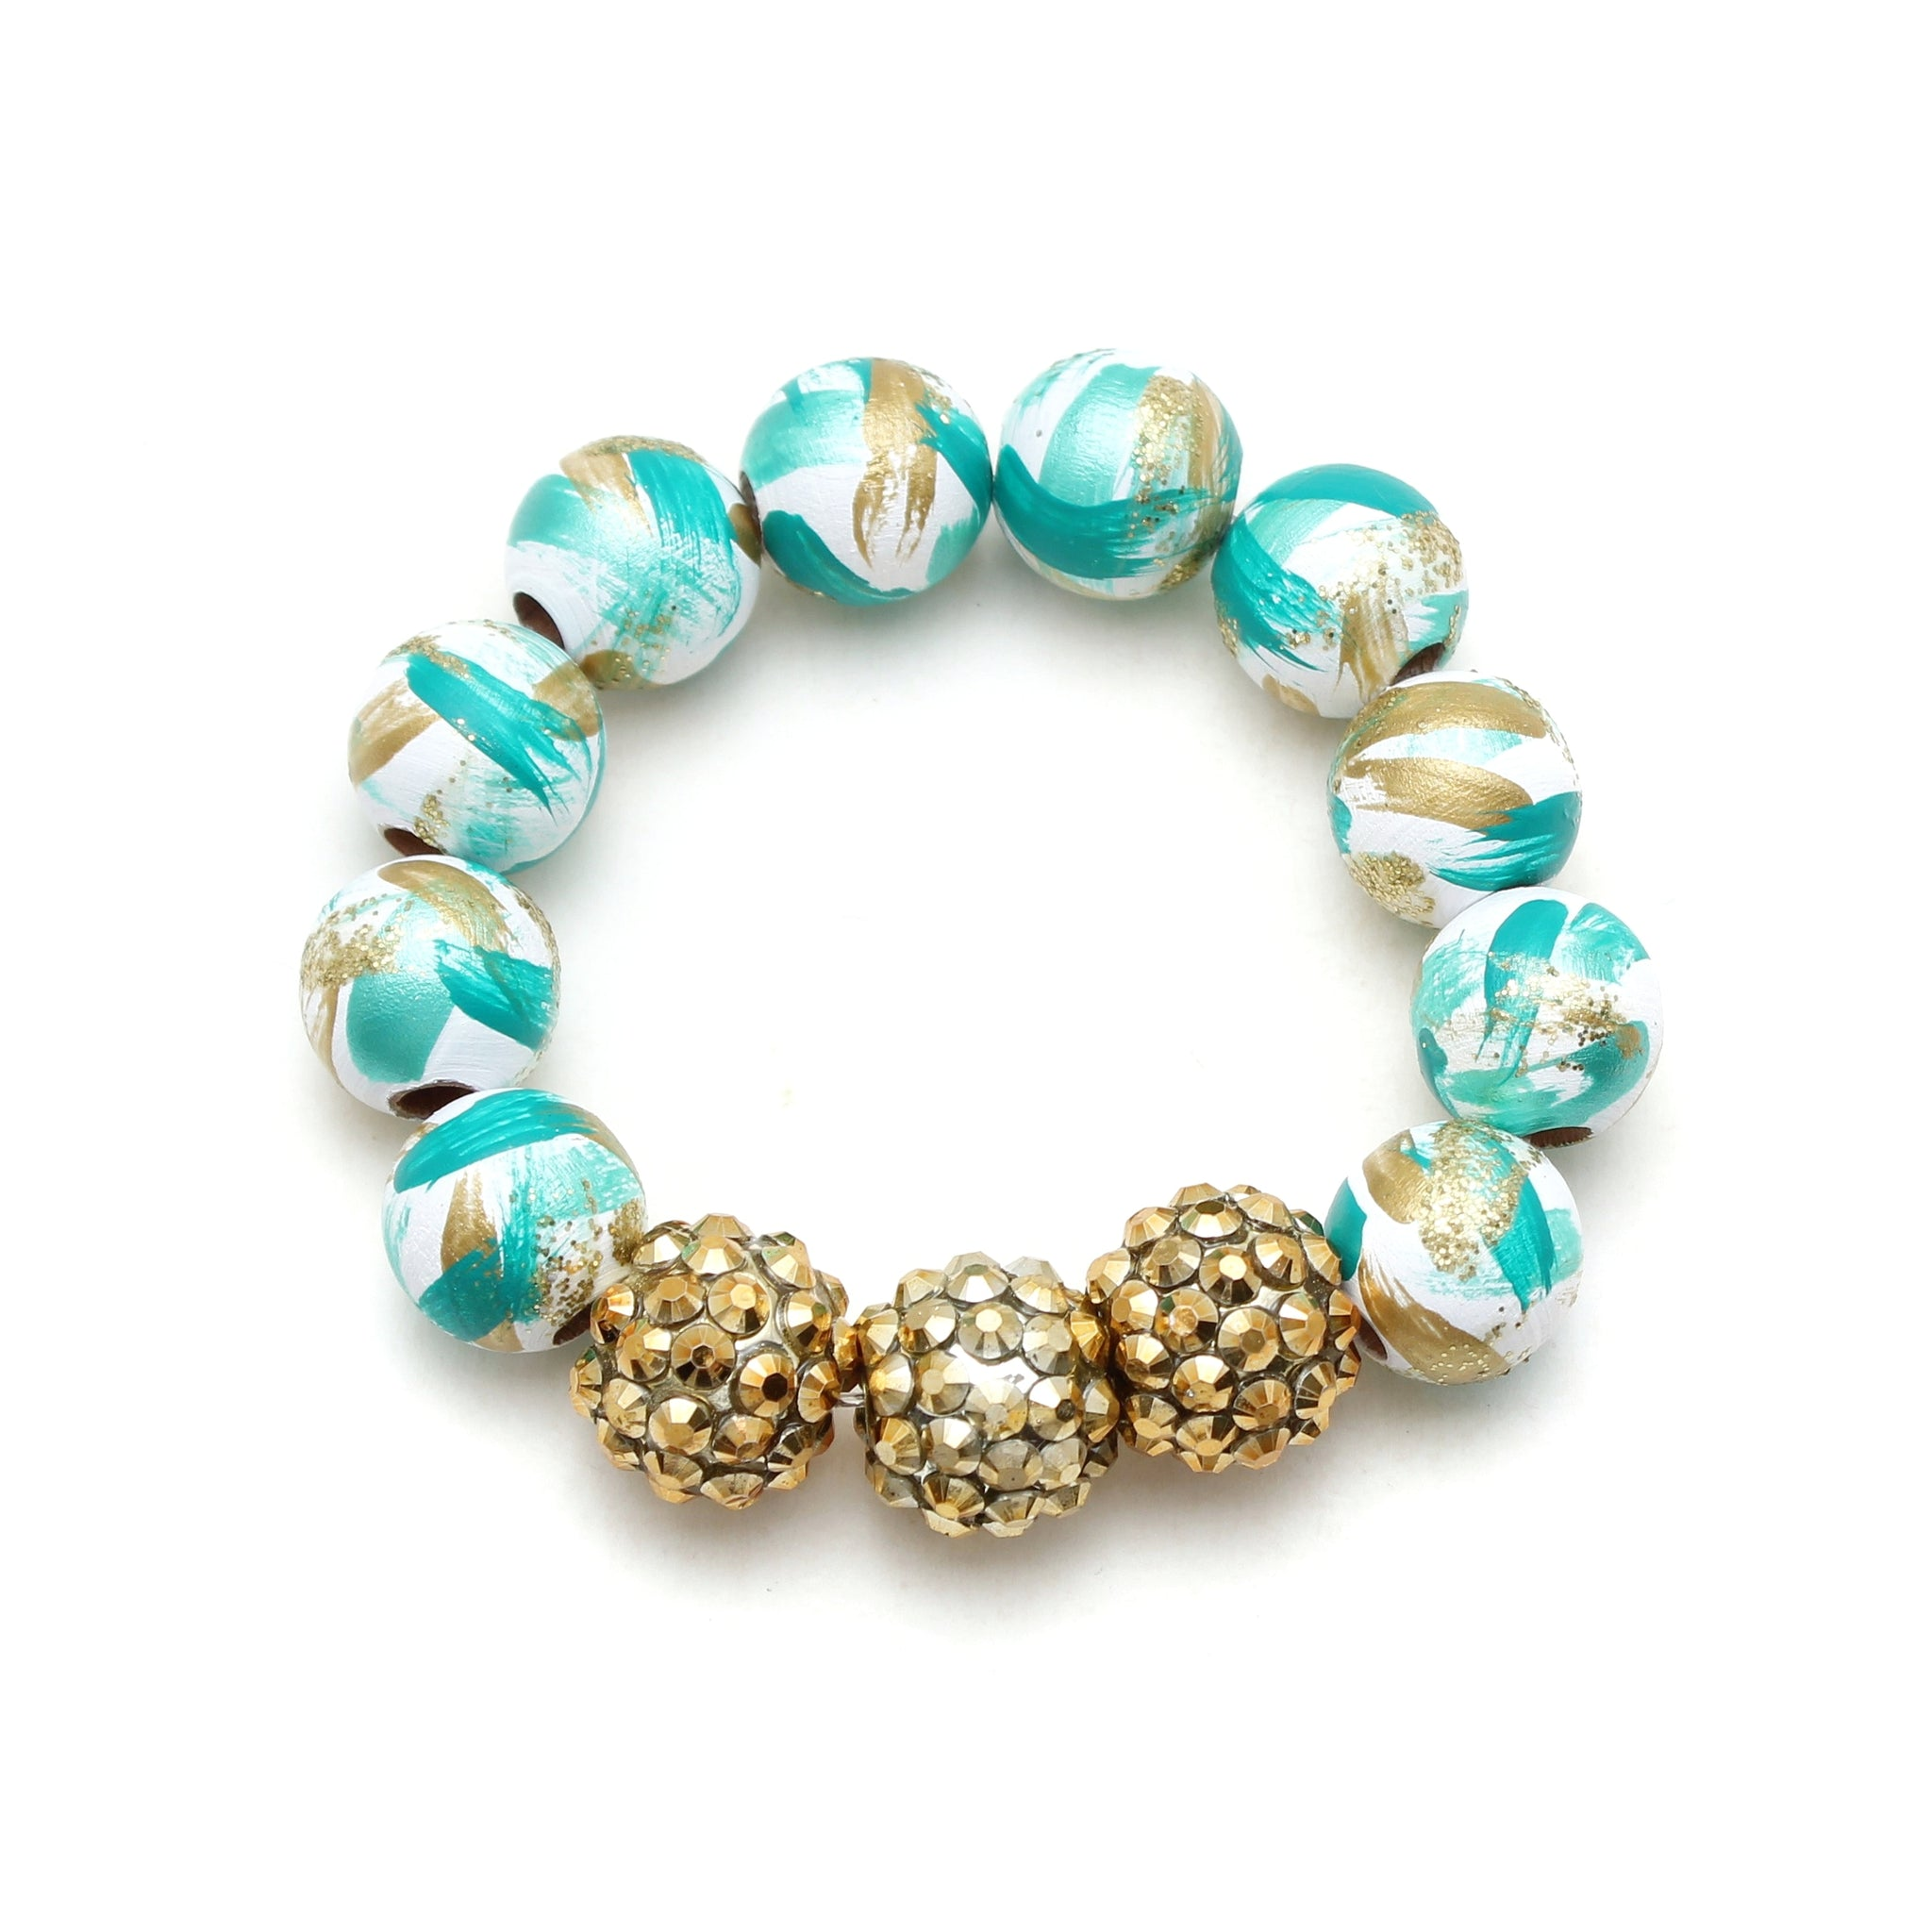 Jasmine Inspired Brush Strokes Hand Painted Bracelet